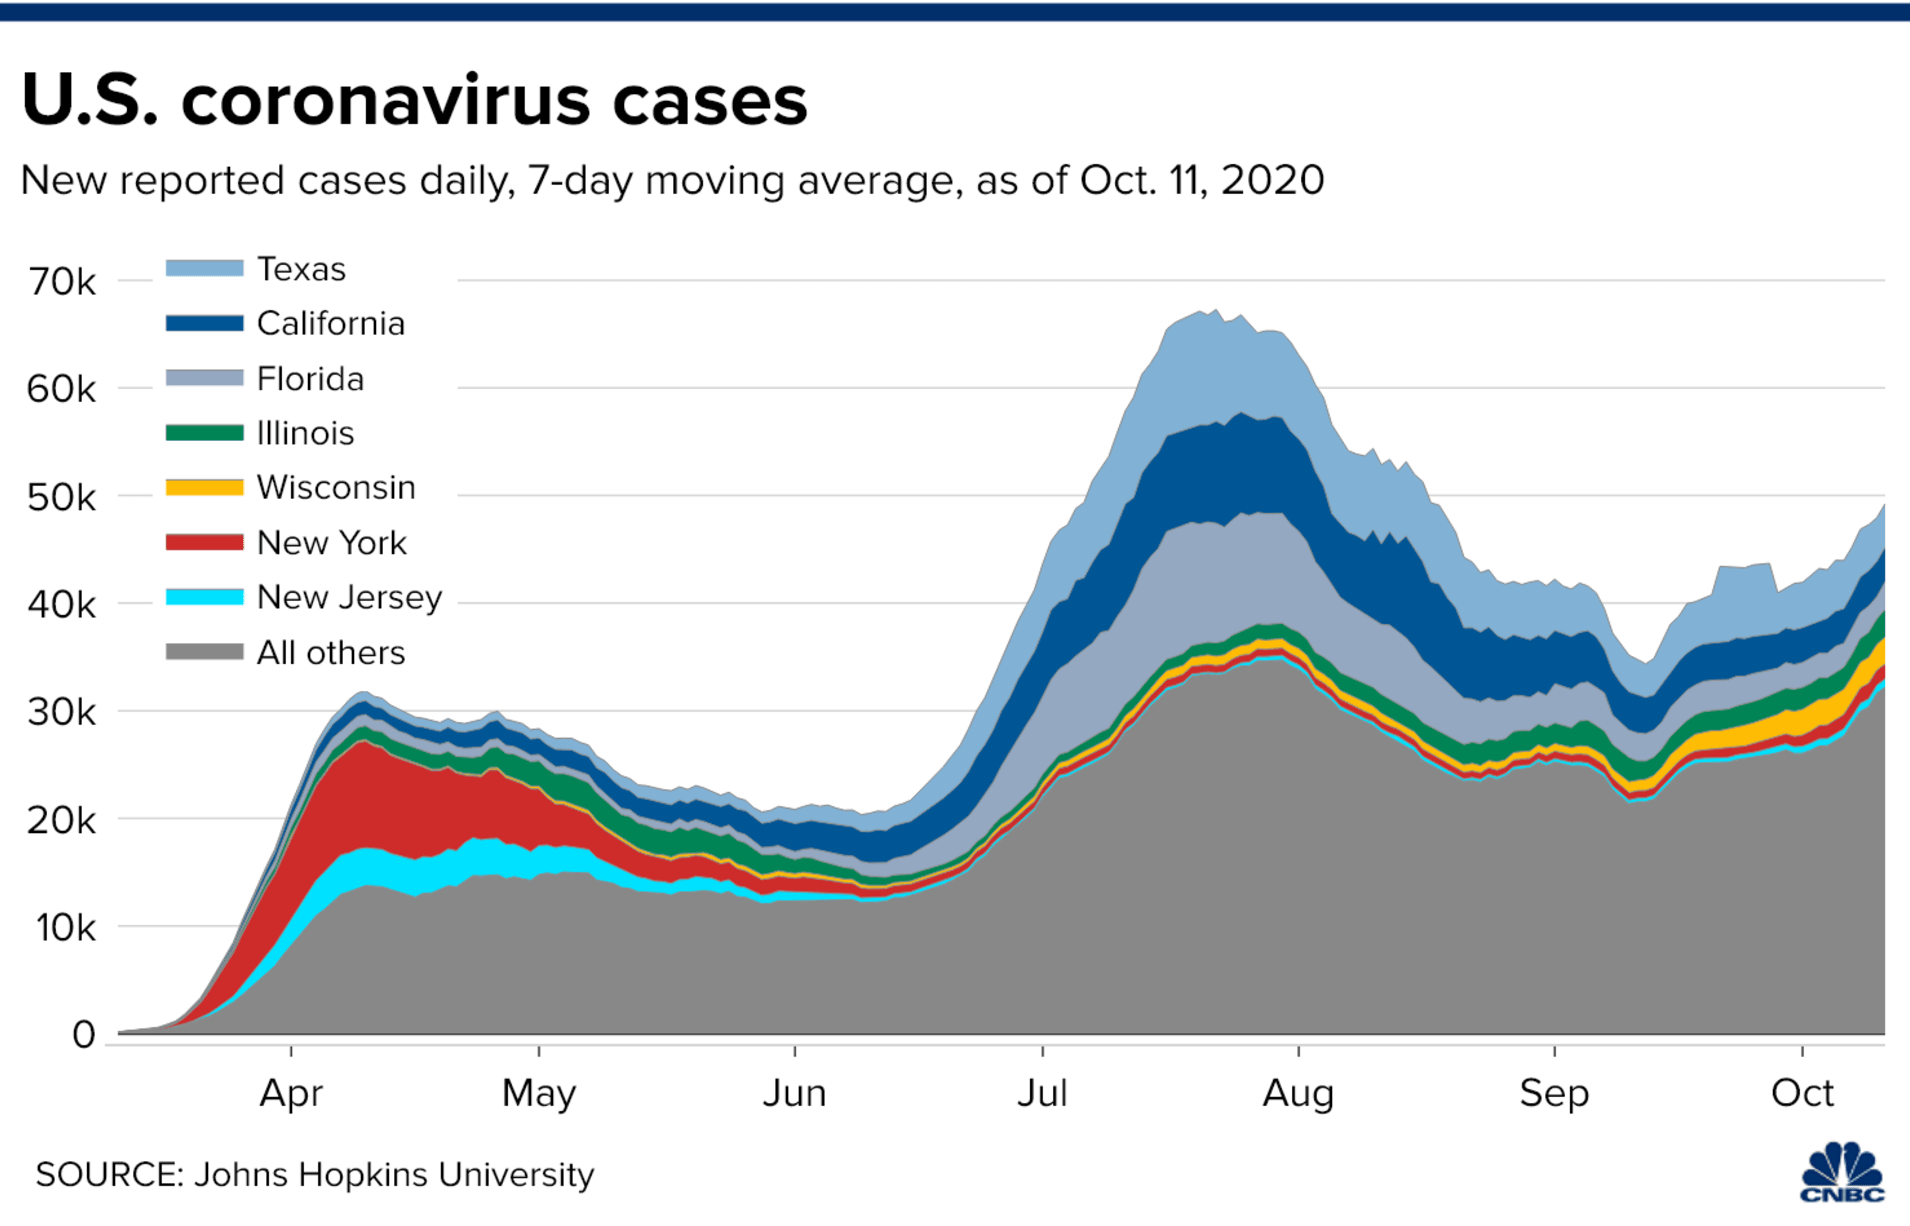 New cases of Covid-19, Apr - Oct 2020, by state